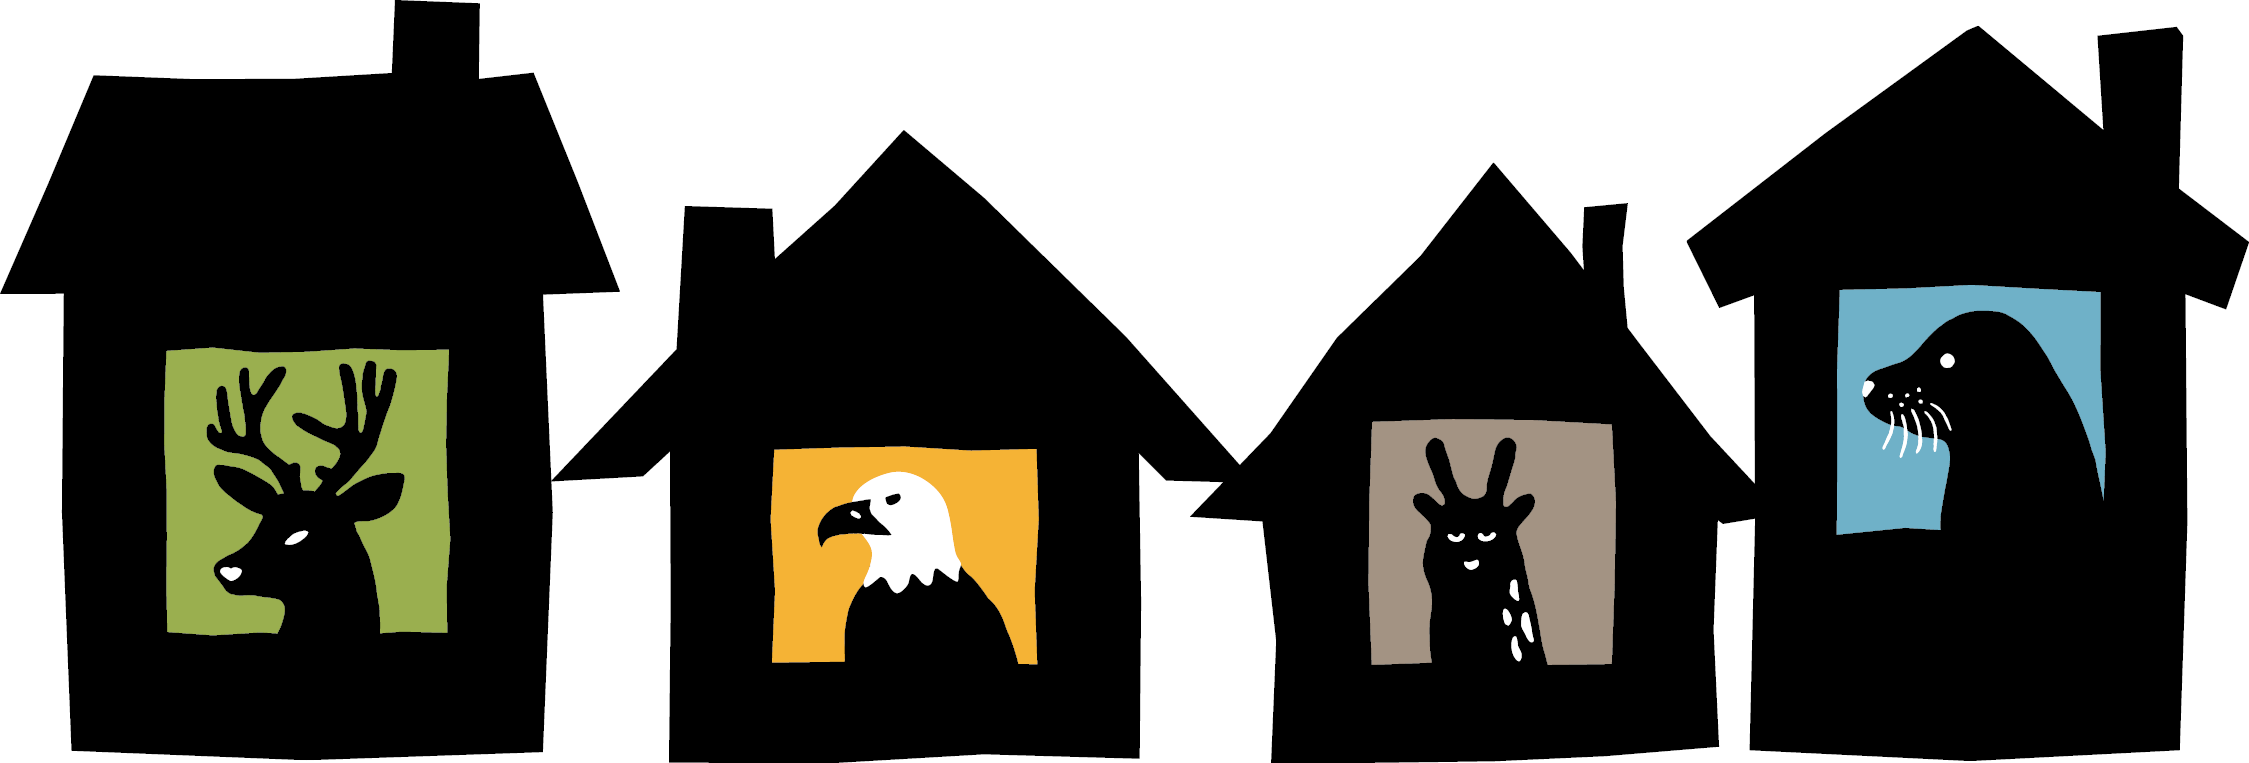 An image of the Bowen Island mascots in houses.